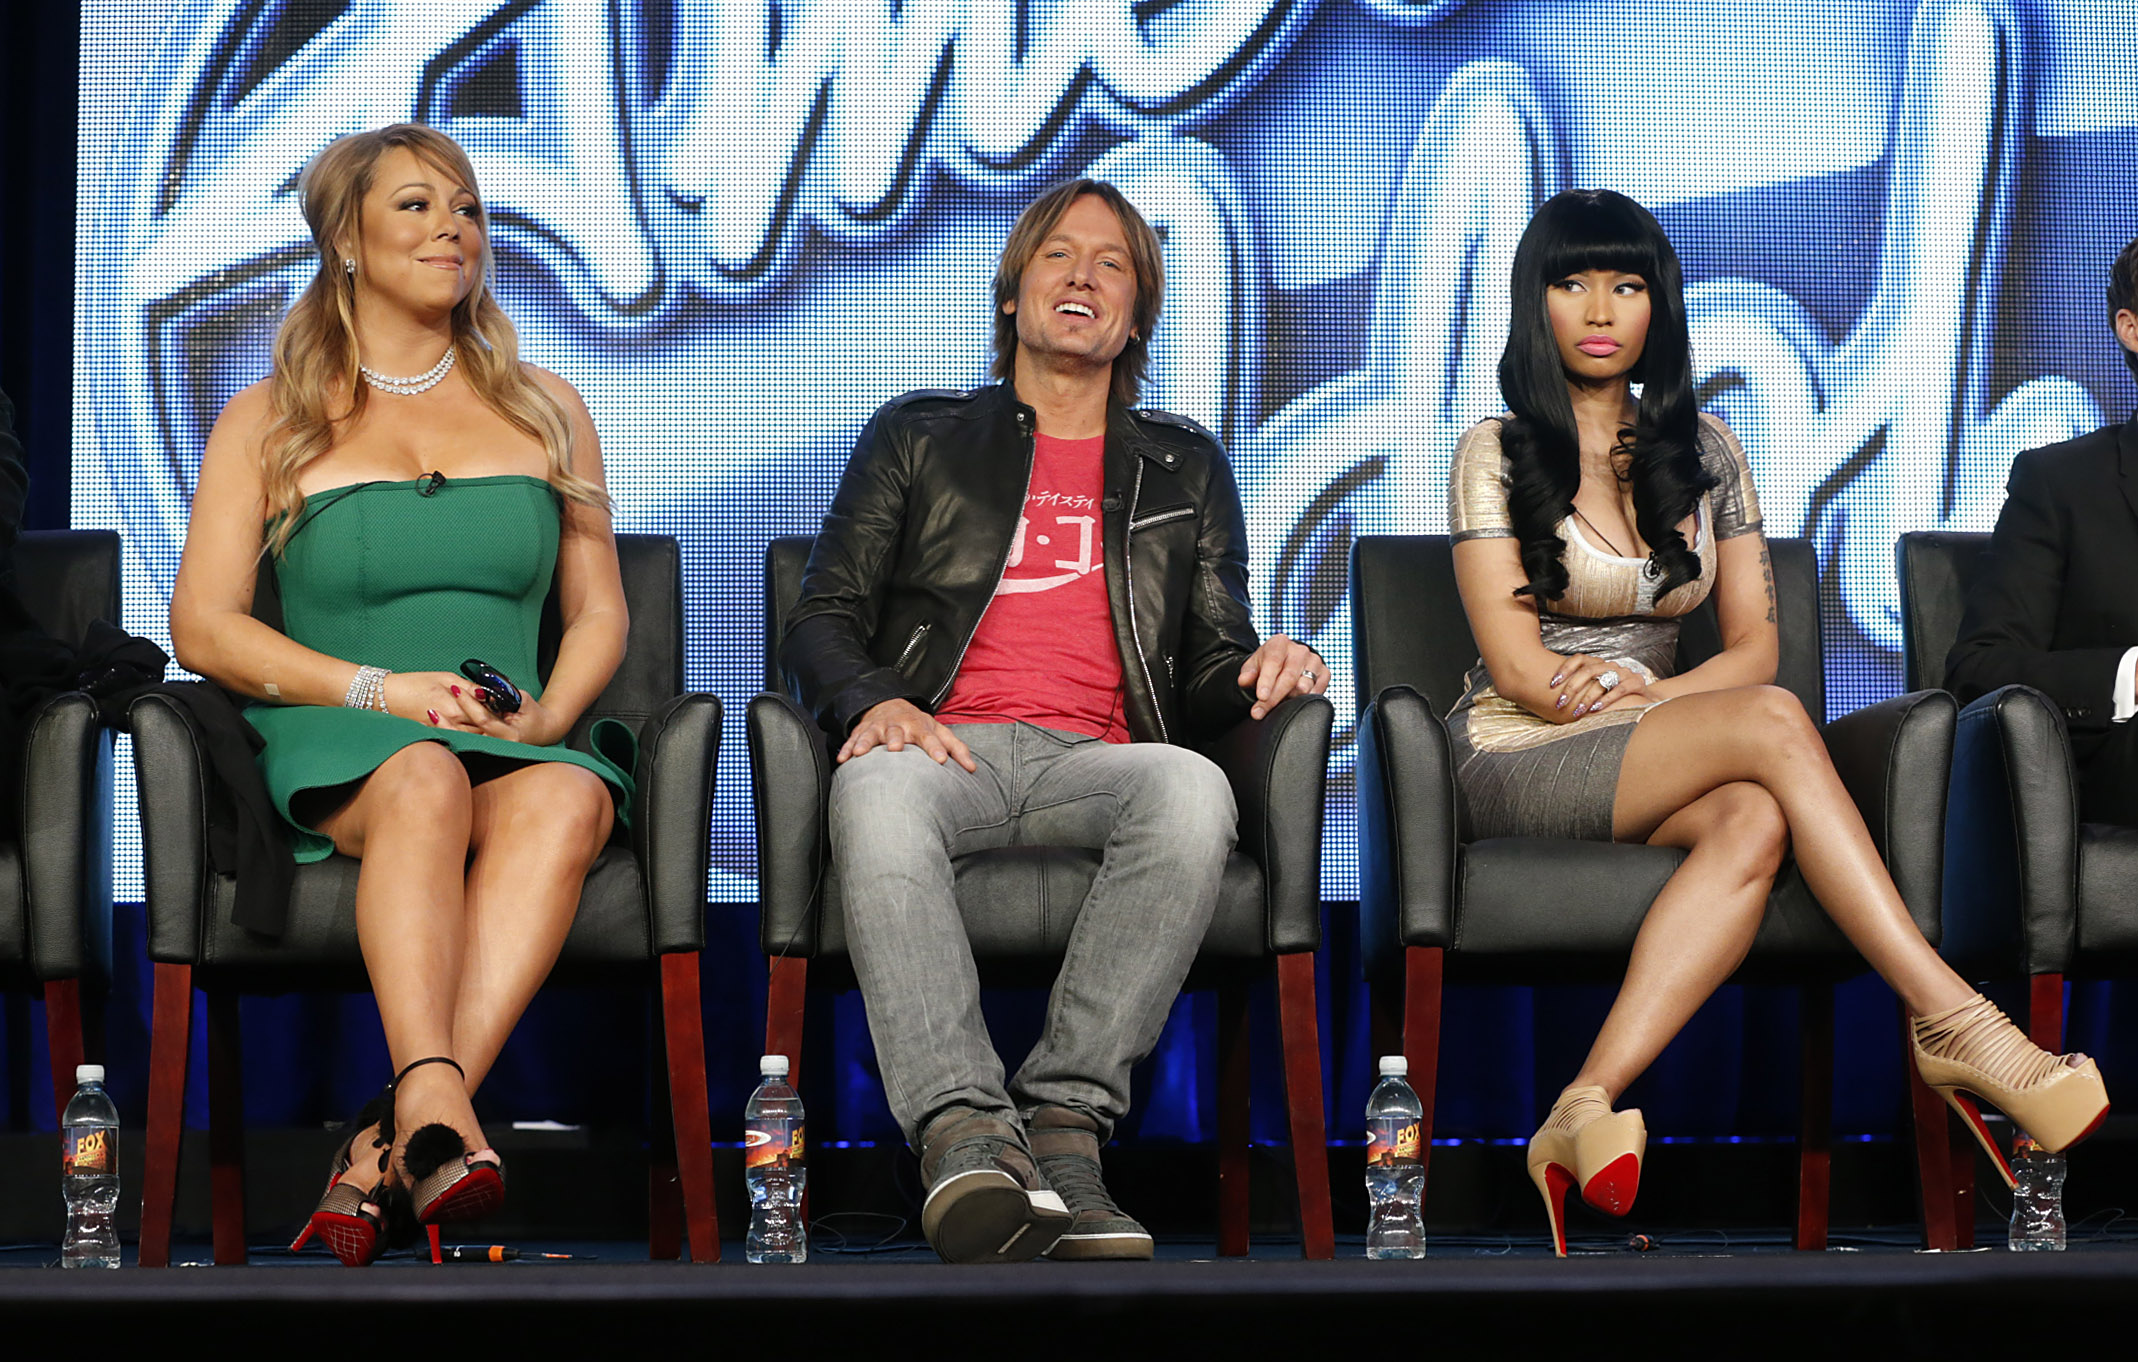 'American Idol' Season 12: The Top 20 is set, but where's the WGWG?